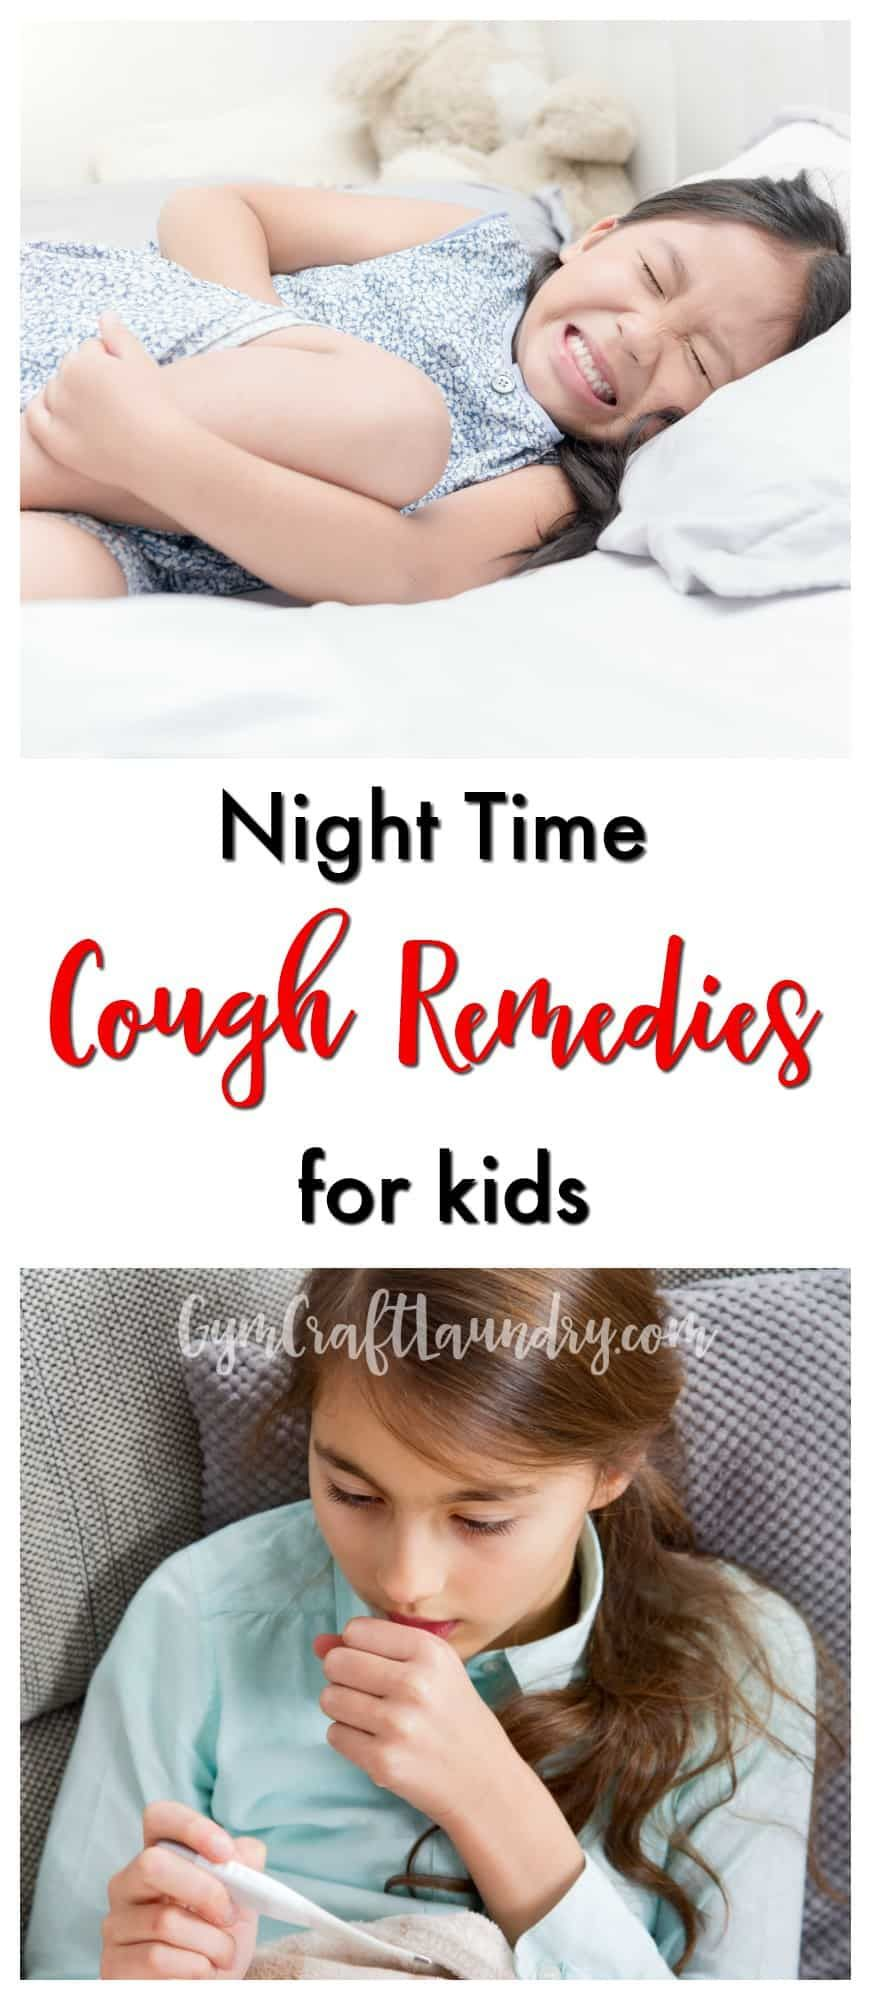 15 Cough Remedies For Kids At Night Via Herchel1 Cough Remedies For Kids Cough Remedies Kids Cough